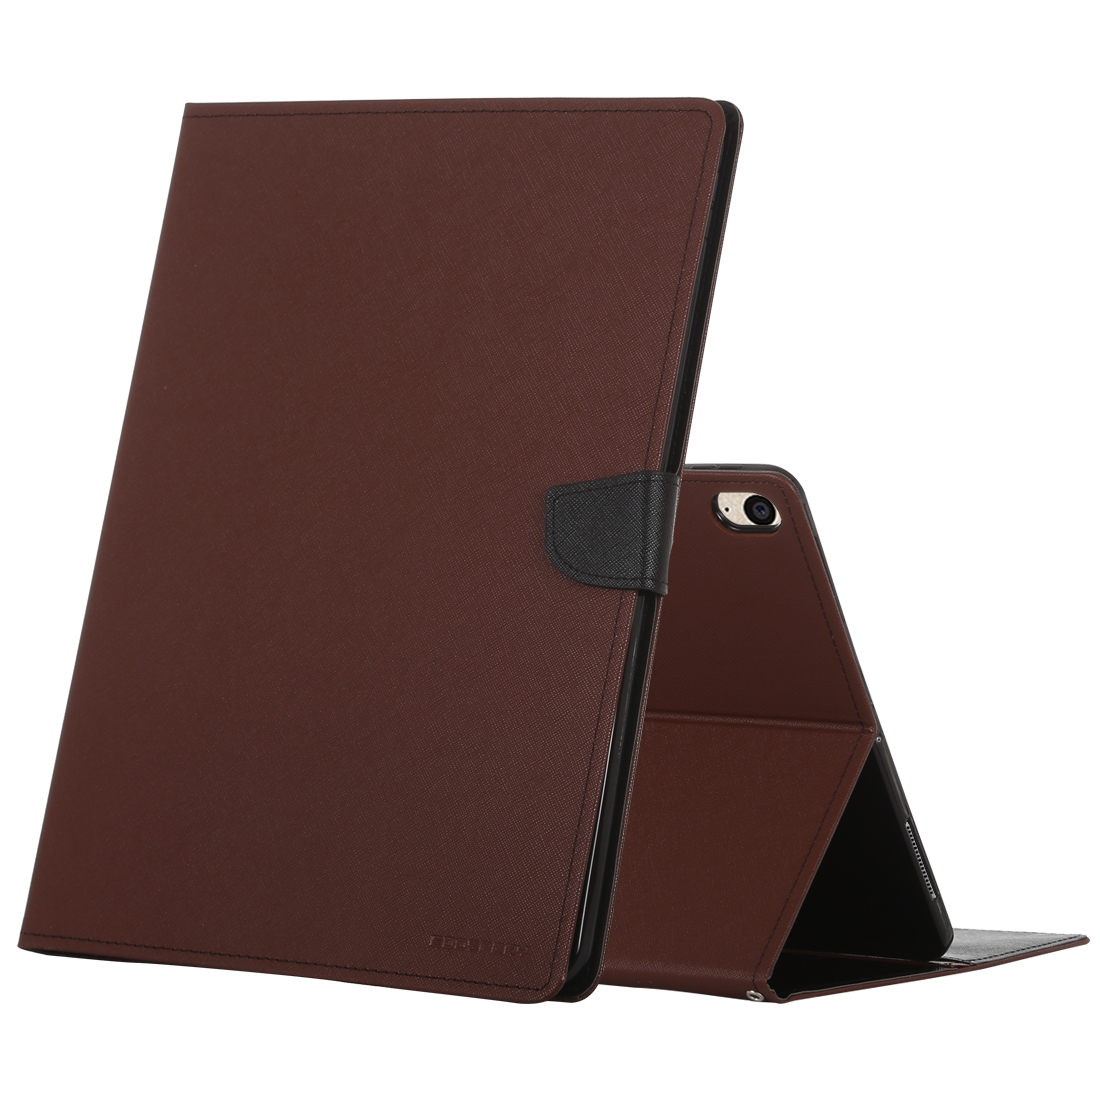 Case Leather iPad Pro 12.9 Case (2018) Slim Profile (Brown)